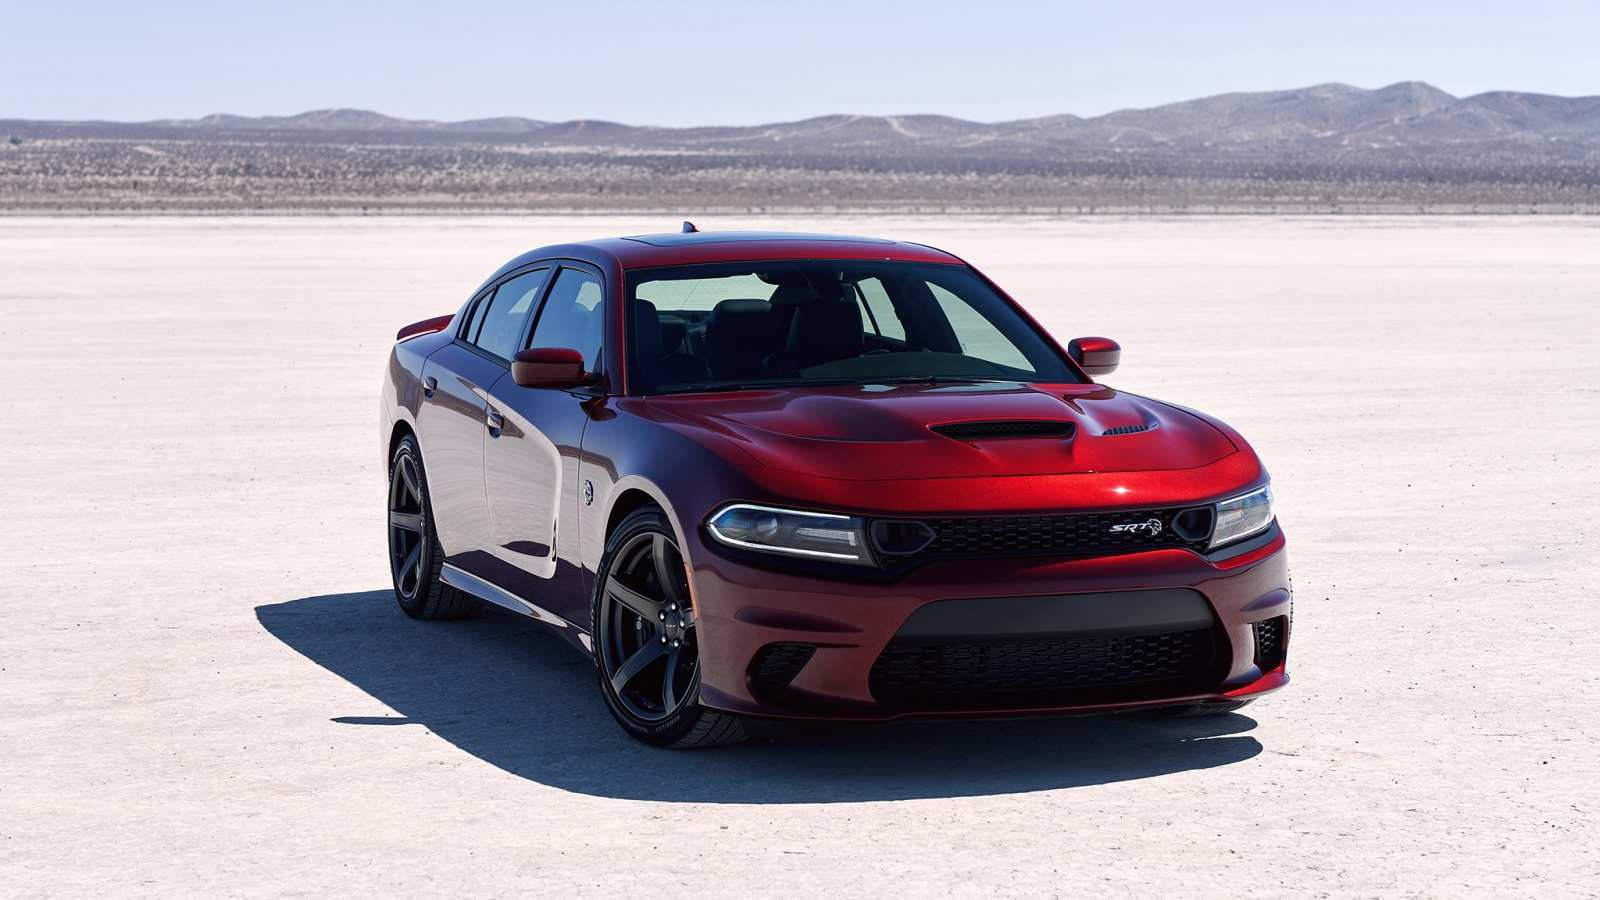 46 Concept of 2020 Dodge Elephant Exterior and Interior with 2020 Dodge Elephant